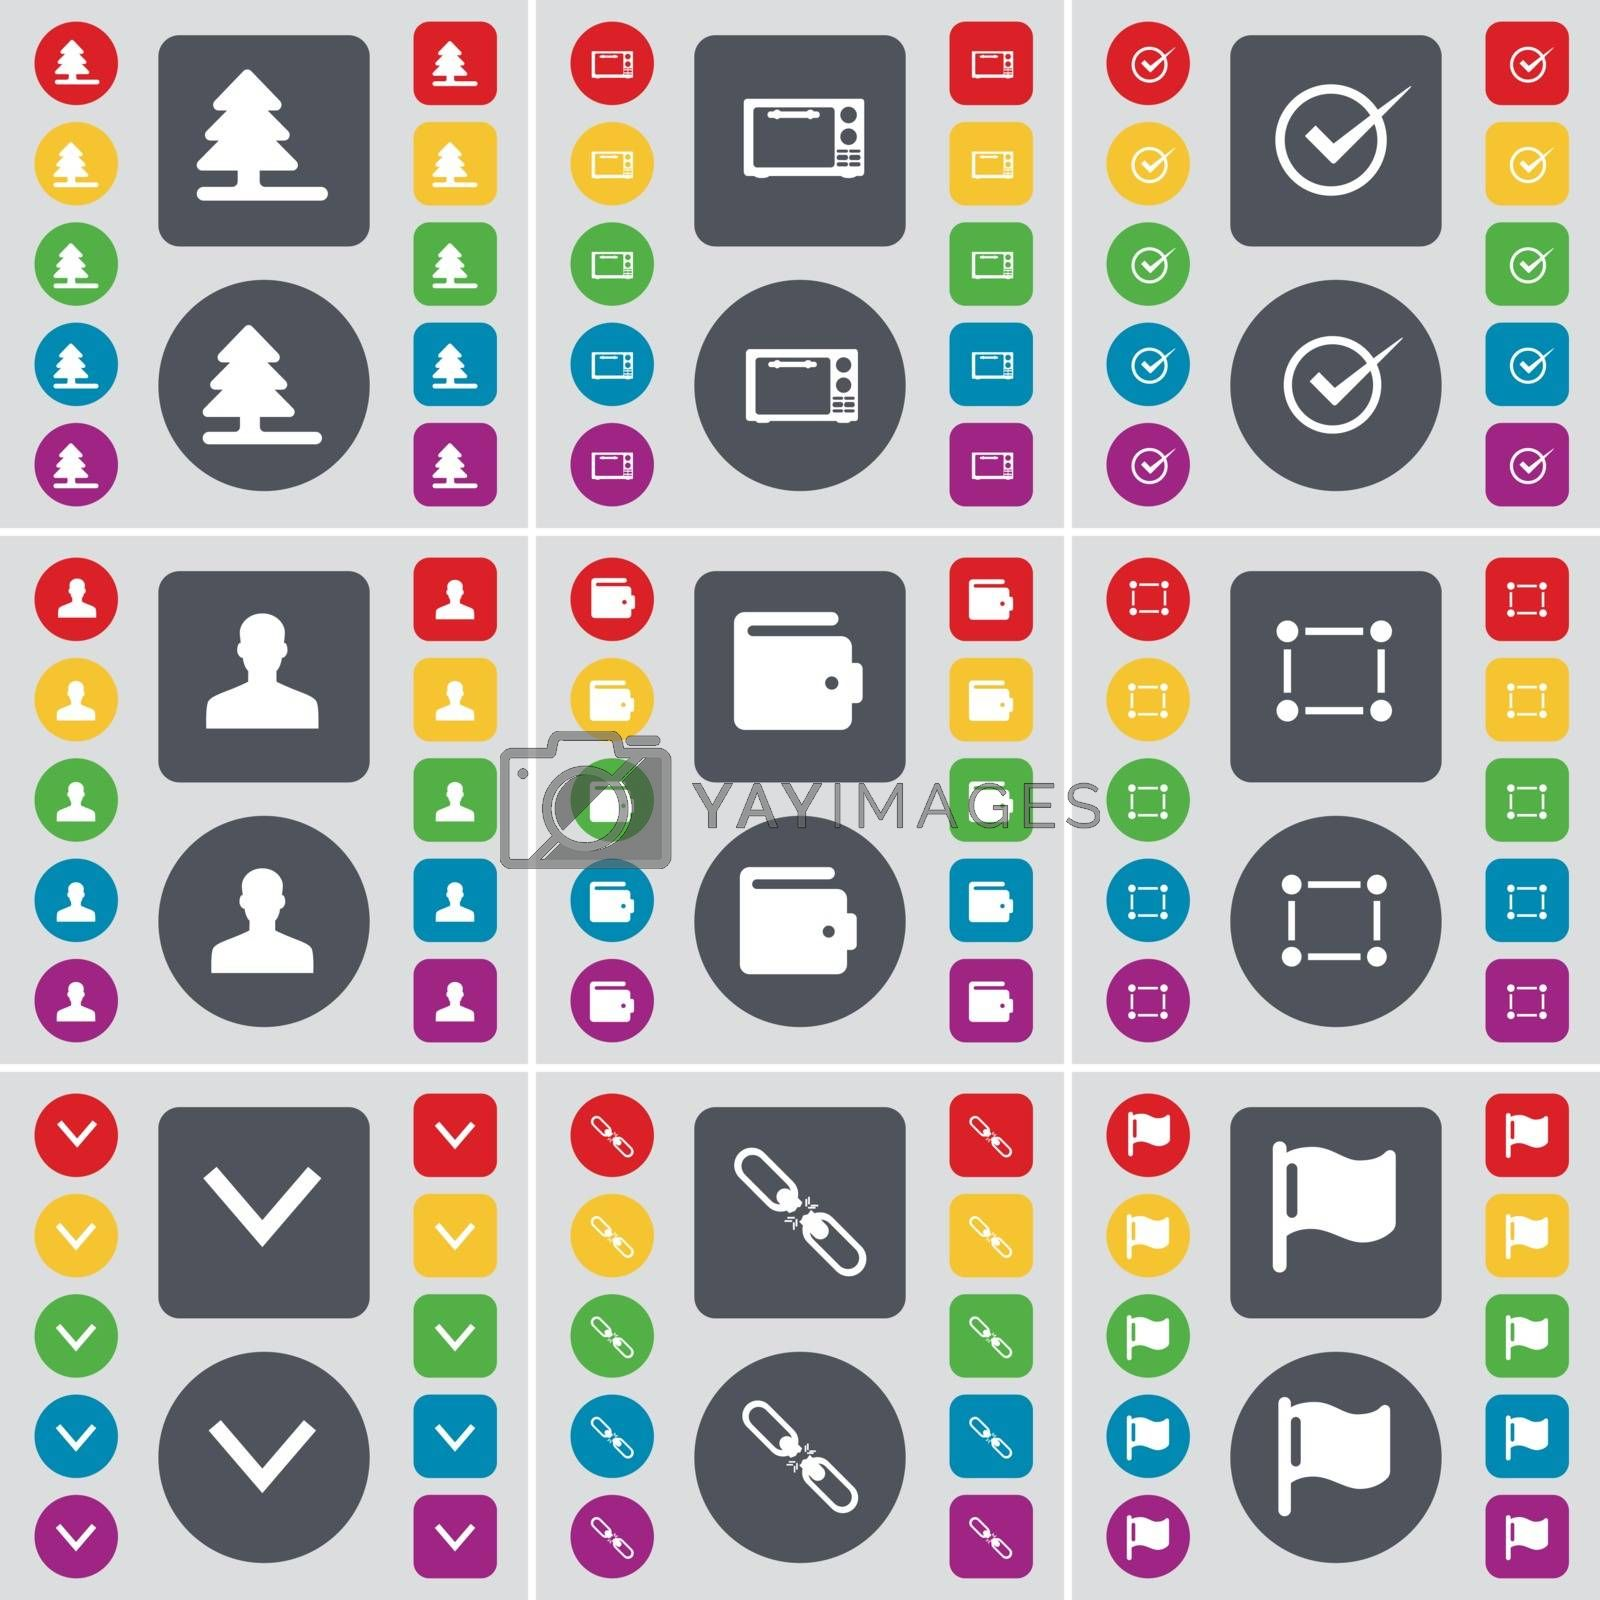 Royalty free image of Firtree, Microwave, Tick, Avatar, Wallet, Frame, Arrow down, Link, Flag icon symbol. A large set of flat, colored buttons for your design. Vector by serhii_lohvyniuk